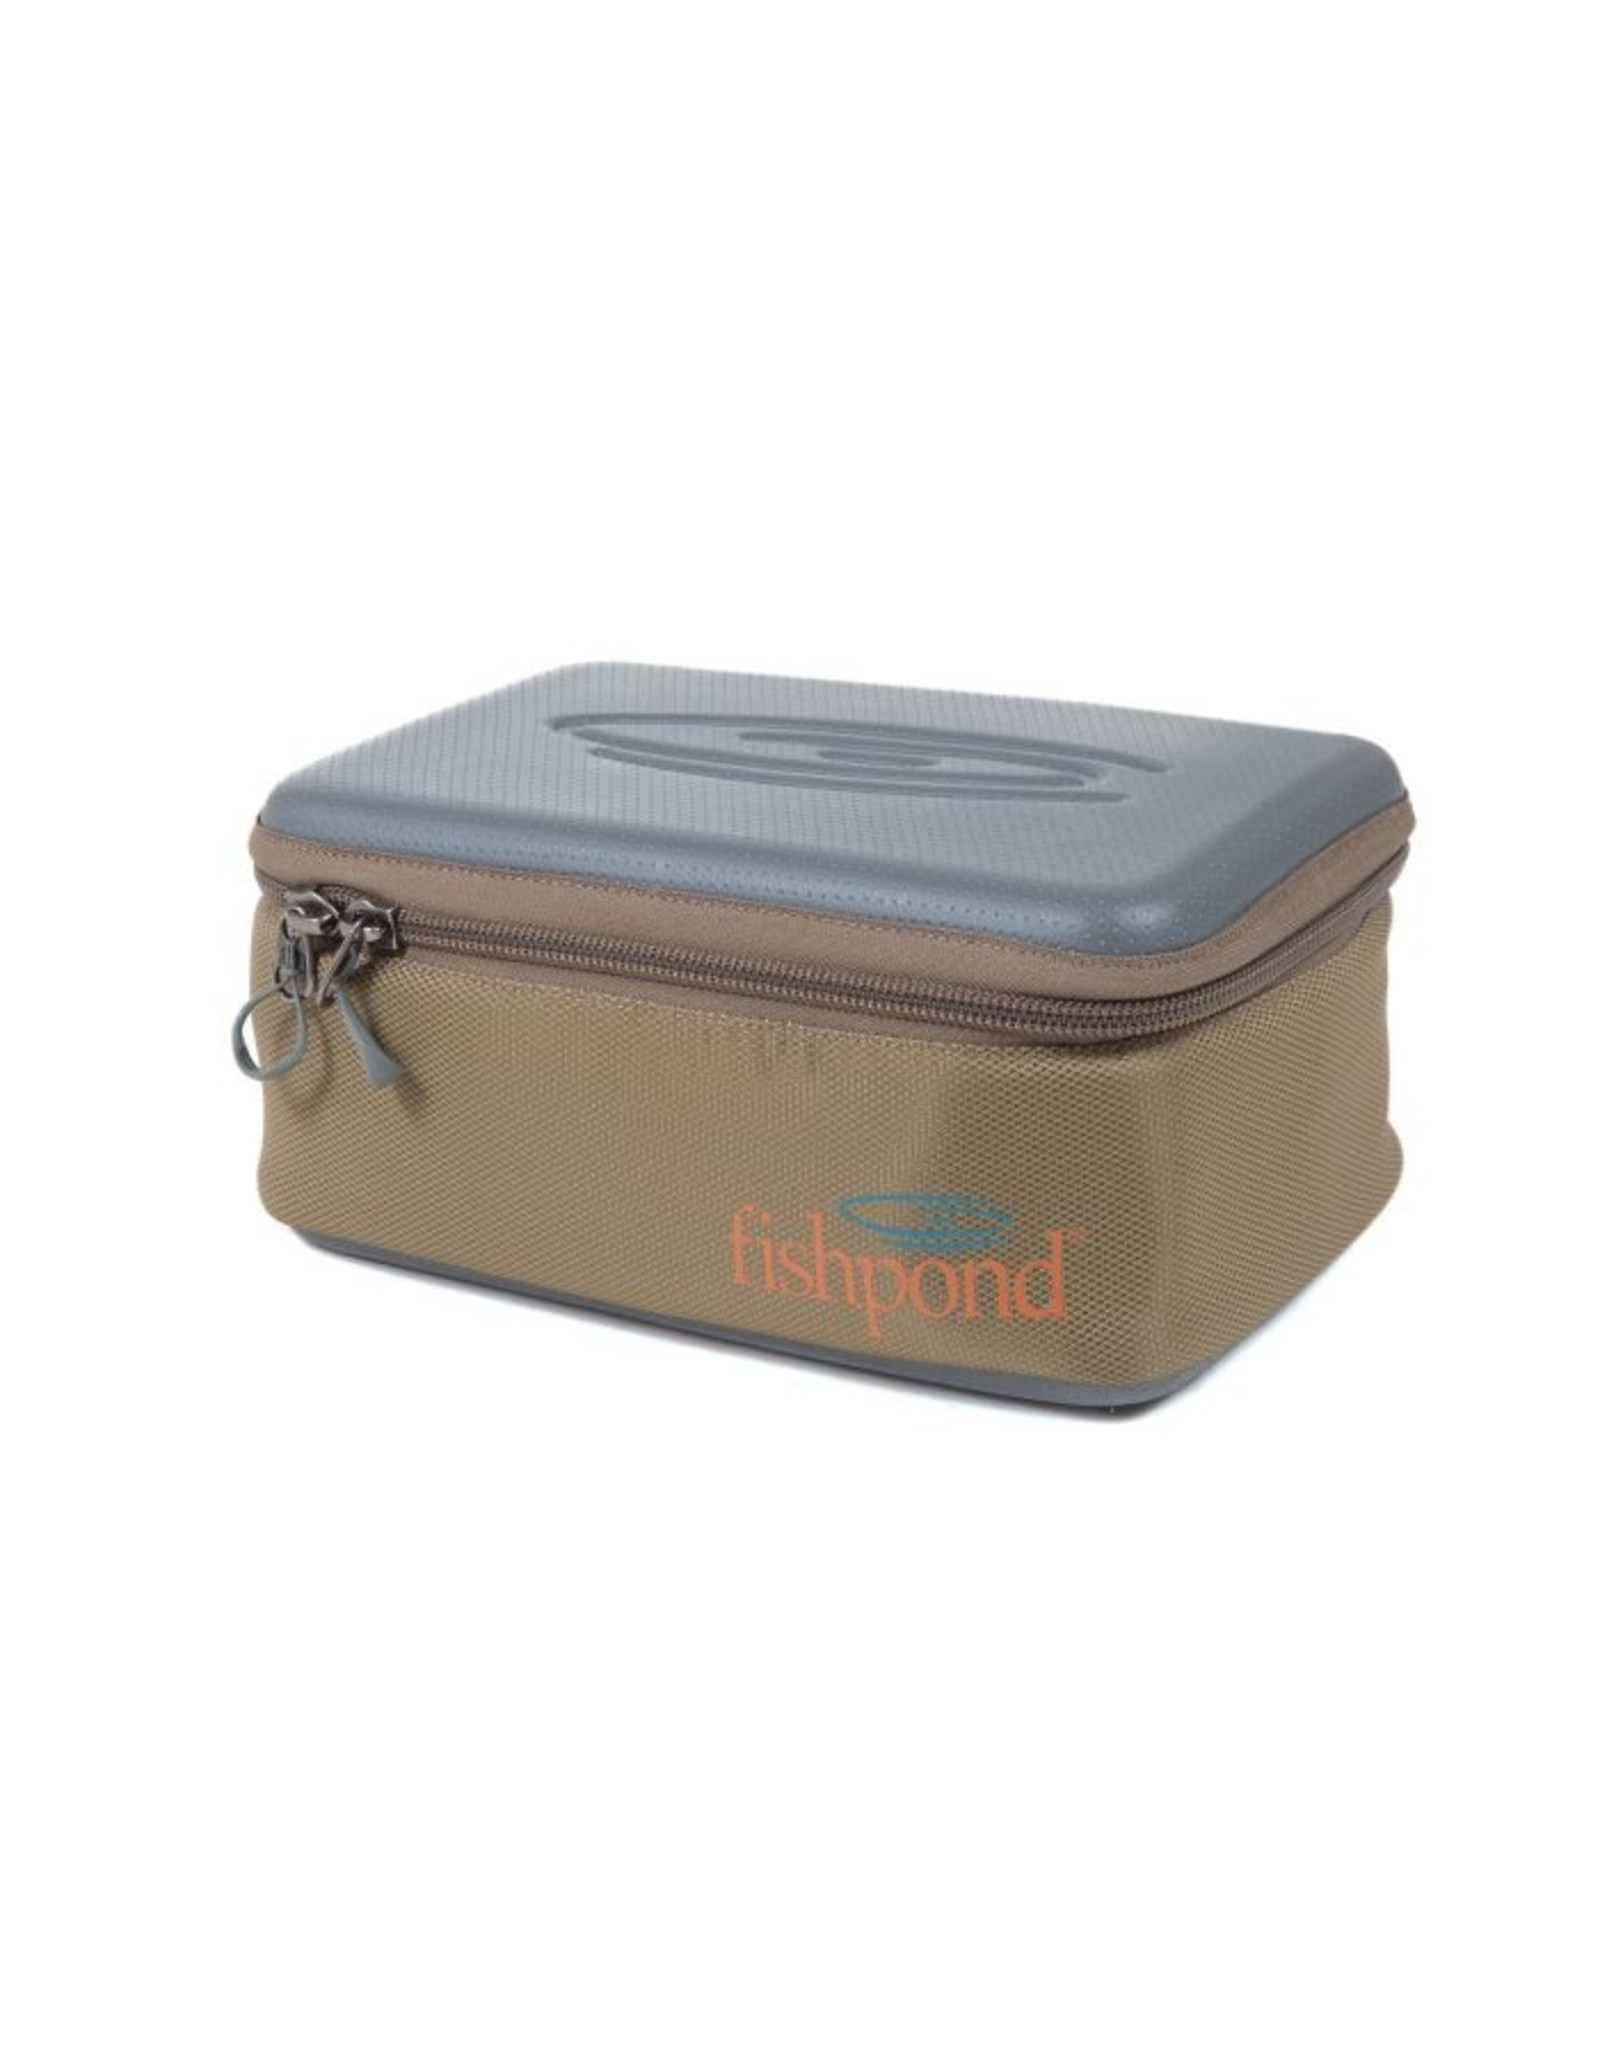 Fishpond Fishpond - Ripple Reel Case - Large